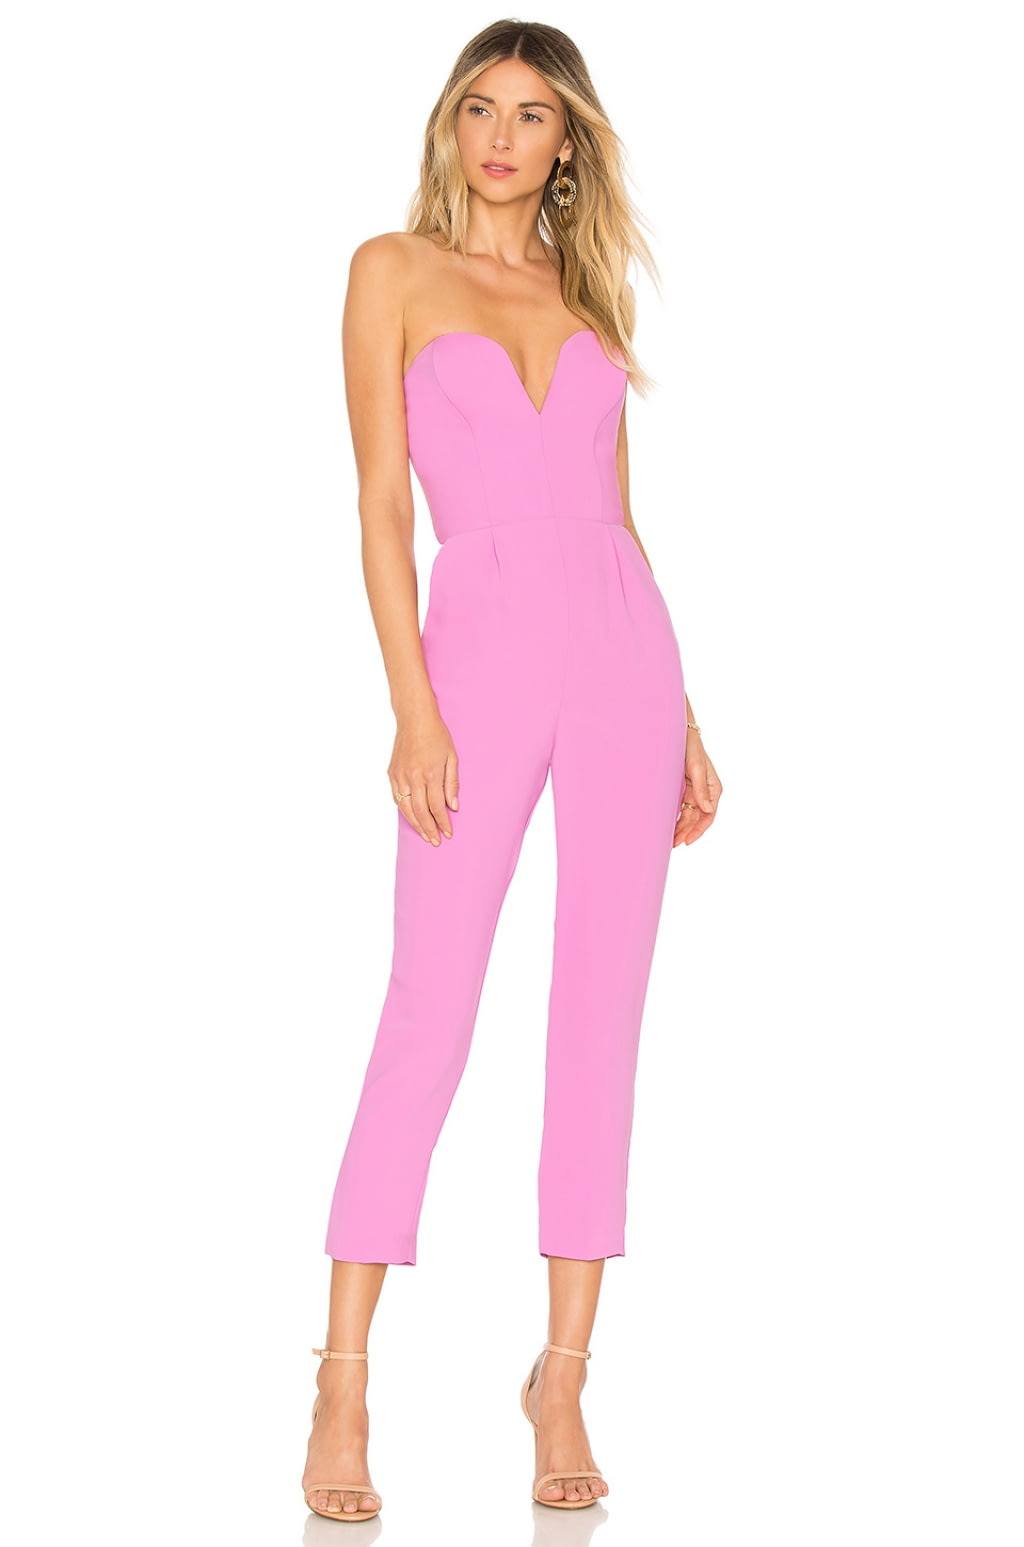 Buy Original Amanda Uprichard Cherri Jumpsuit At Indonesia Bobobobo